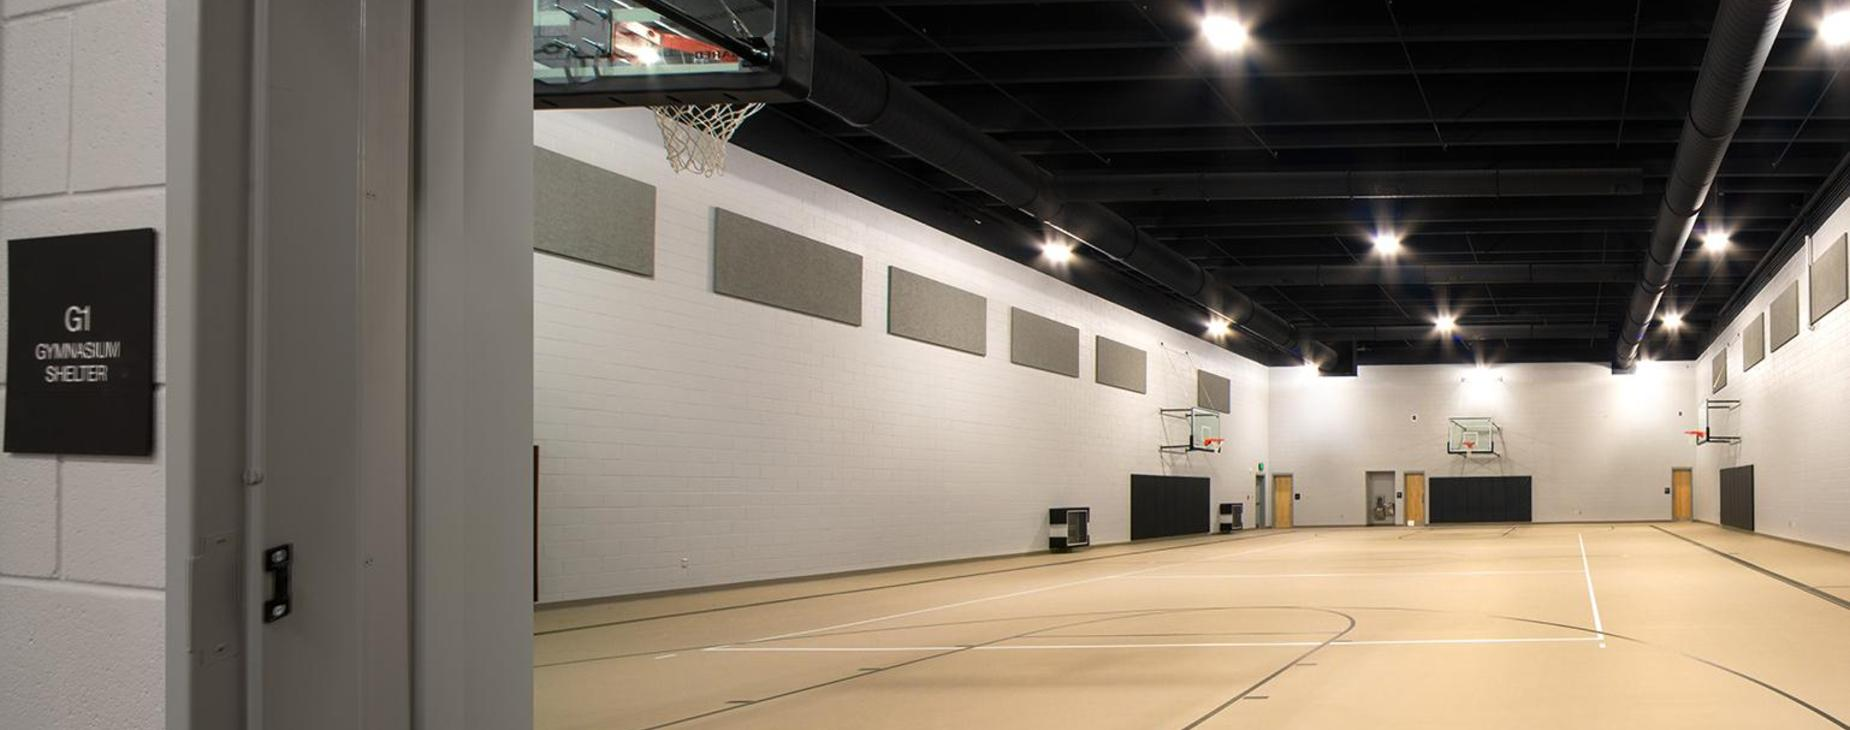 Storm Shelter/Practice Gym